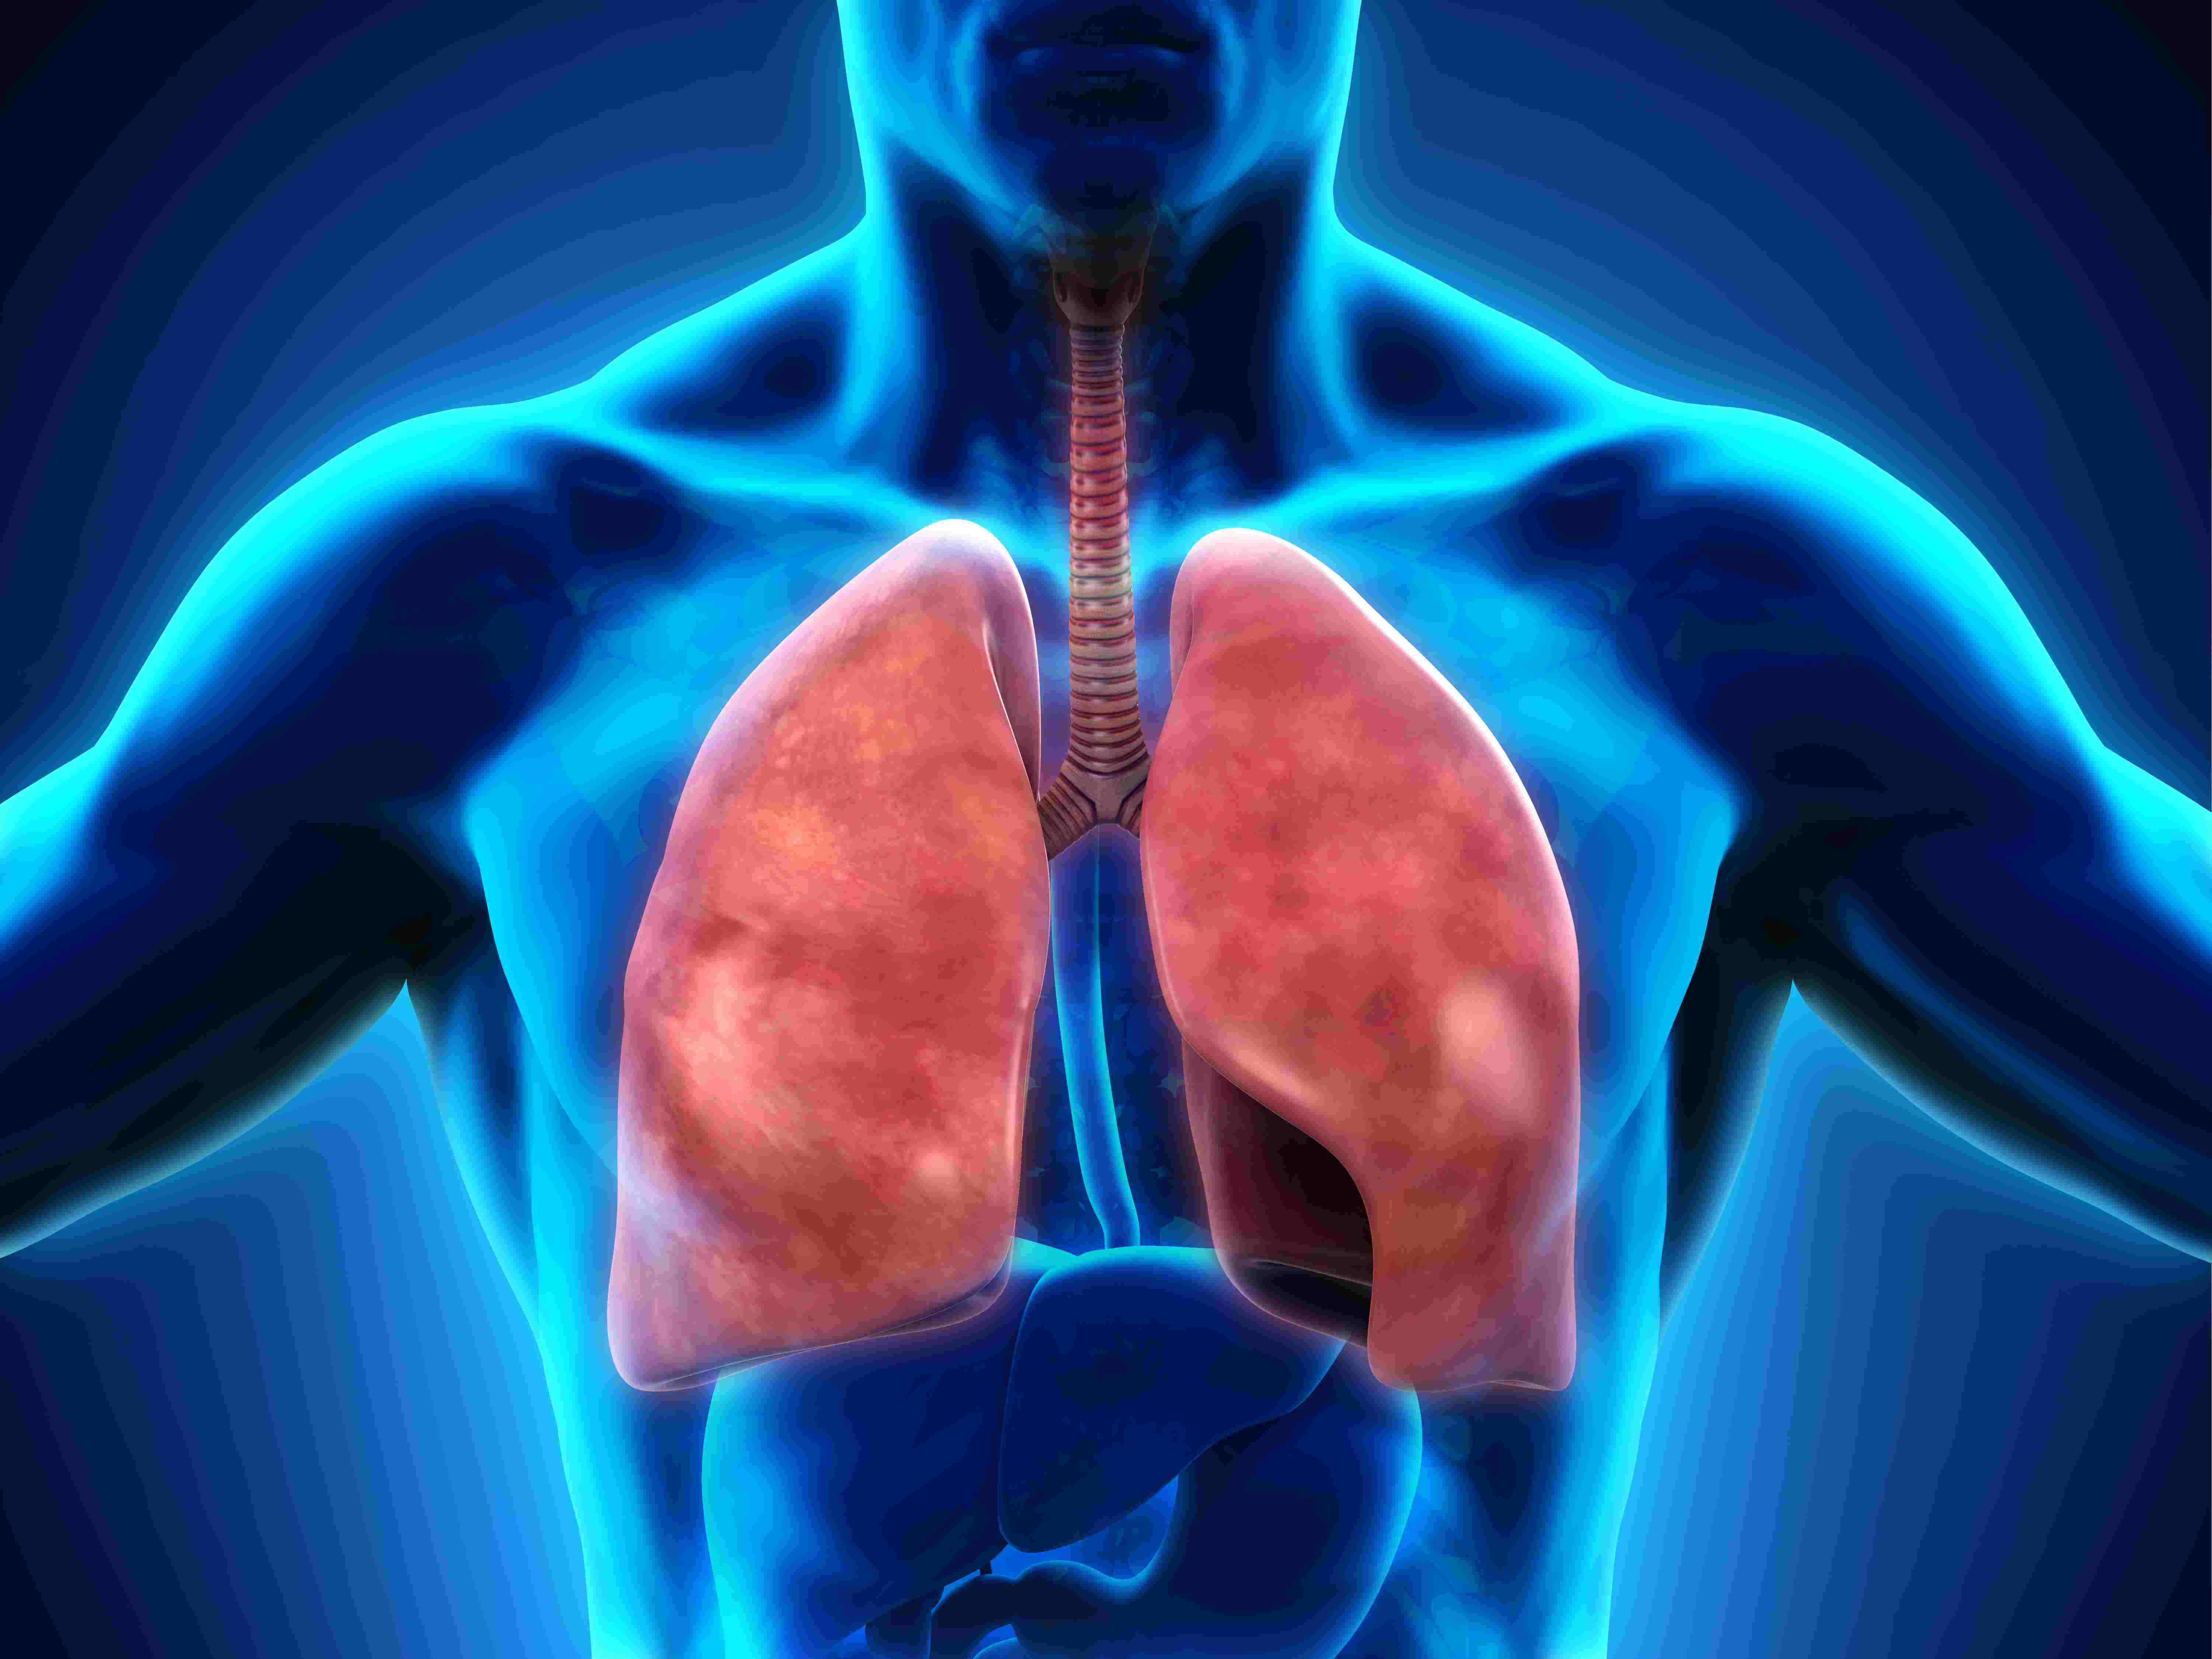 The key to understanding biology is a solid foundation in its most basic concepts. The Respiratory System